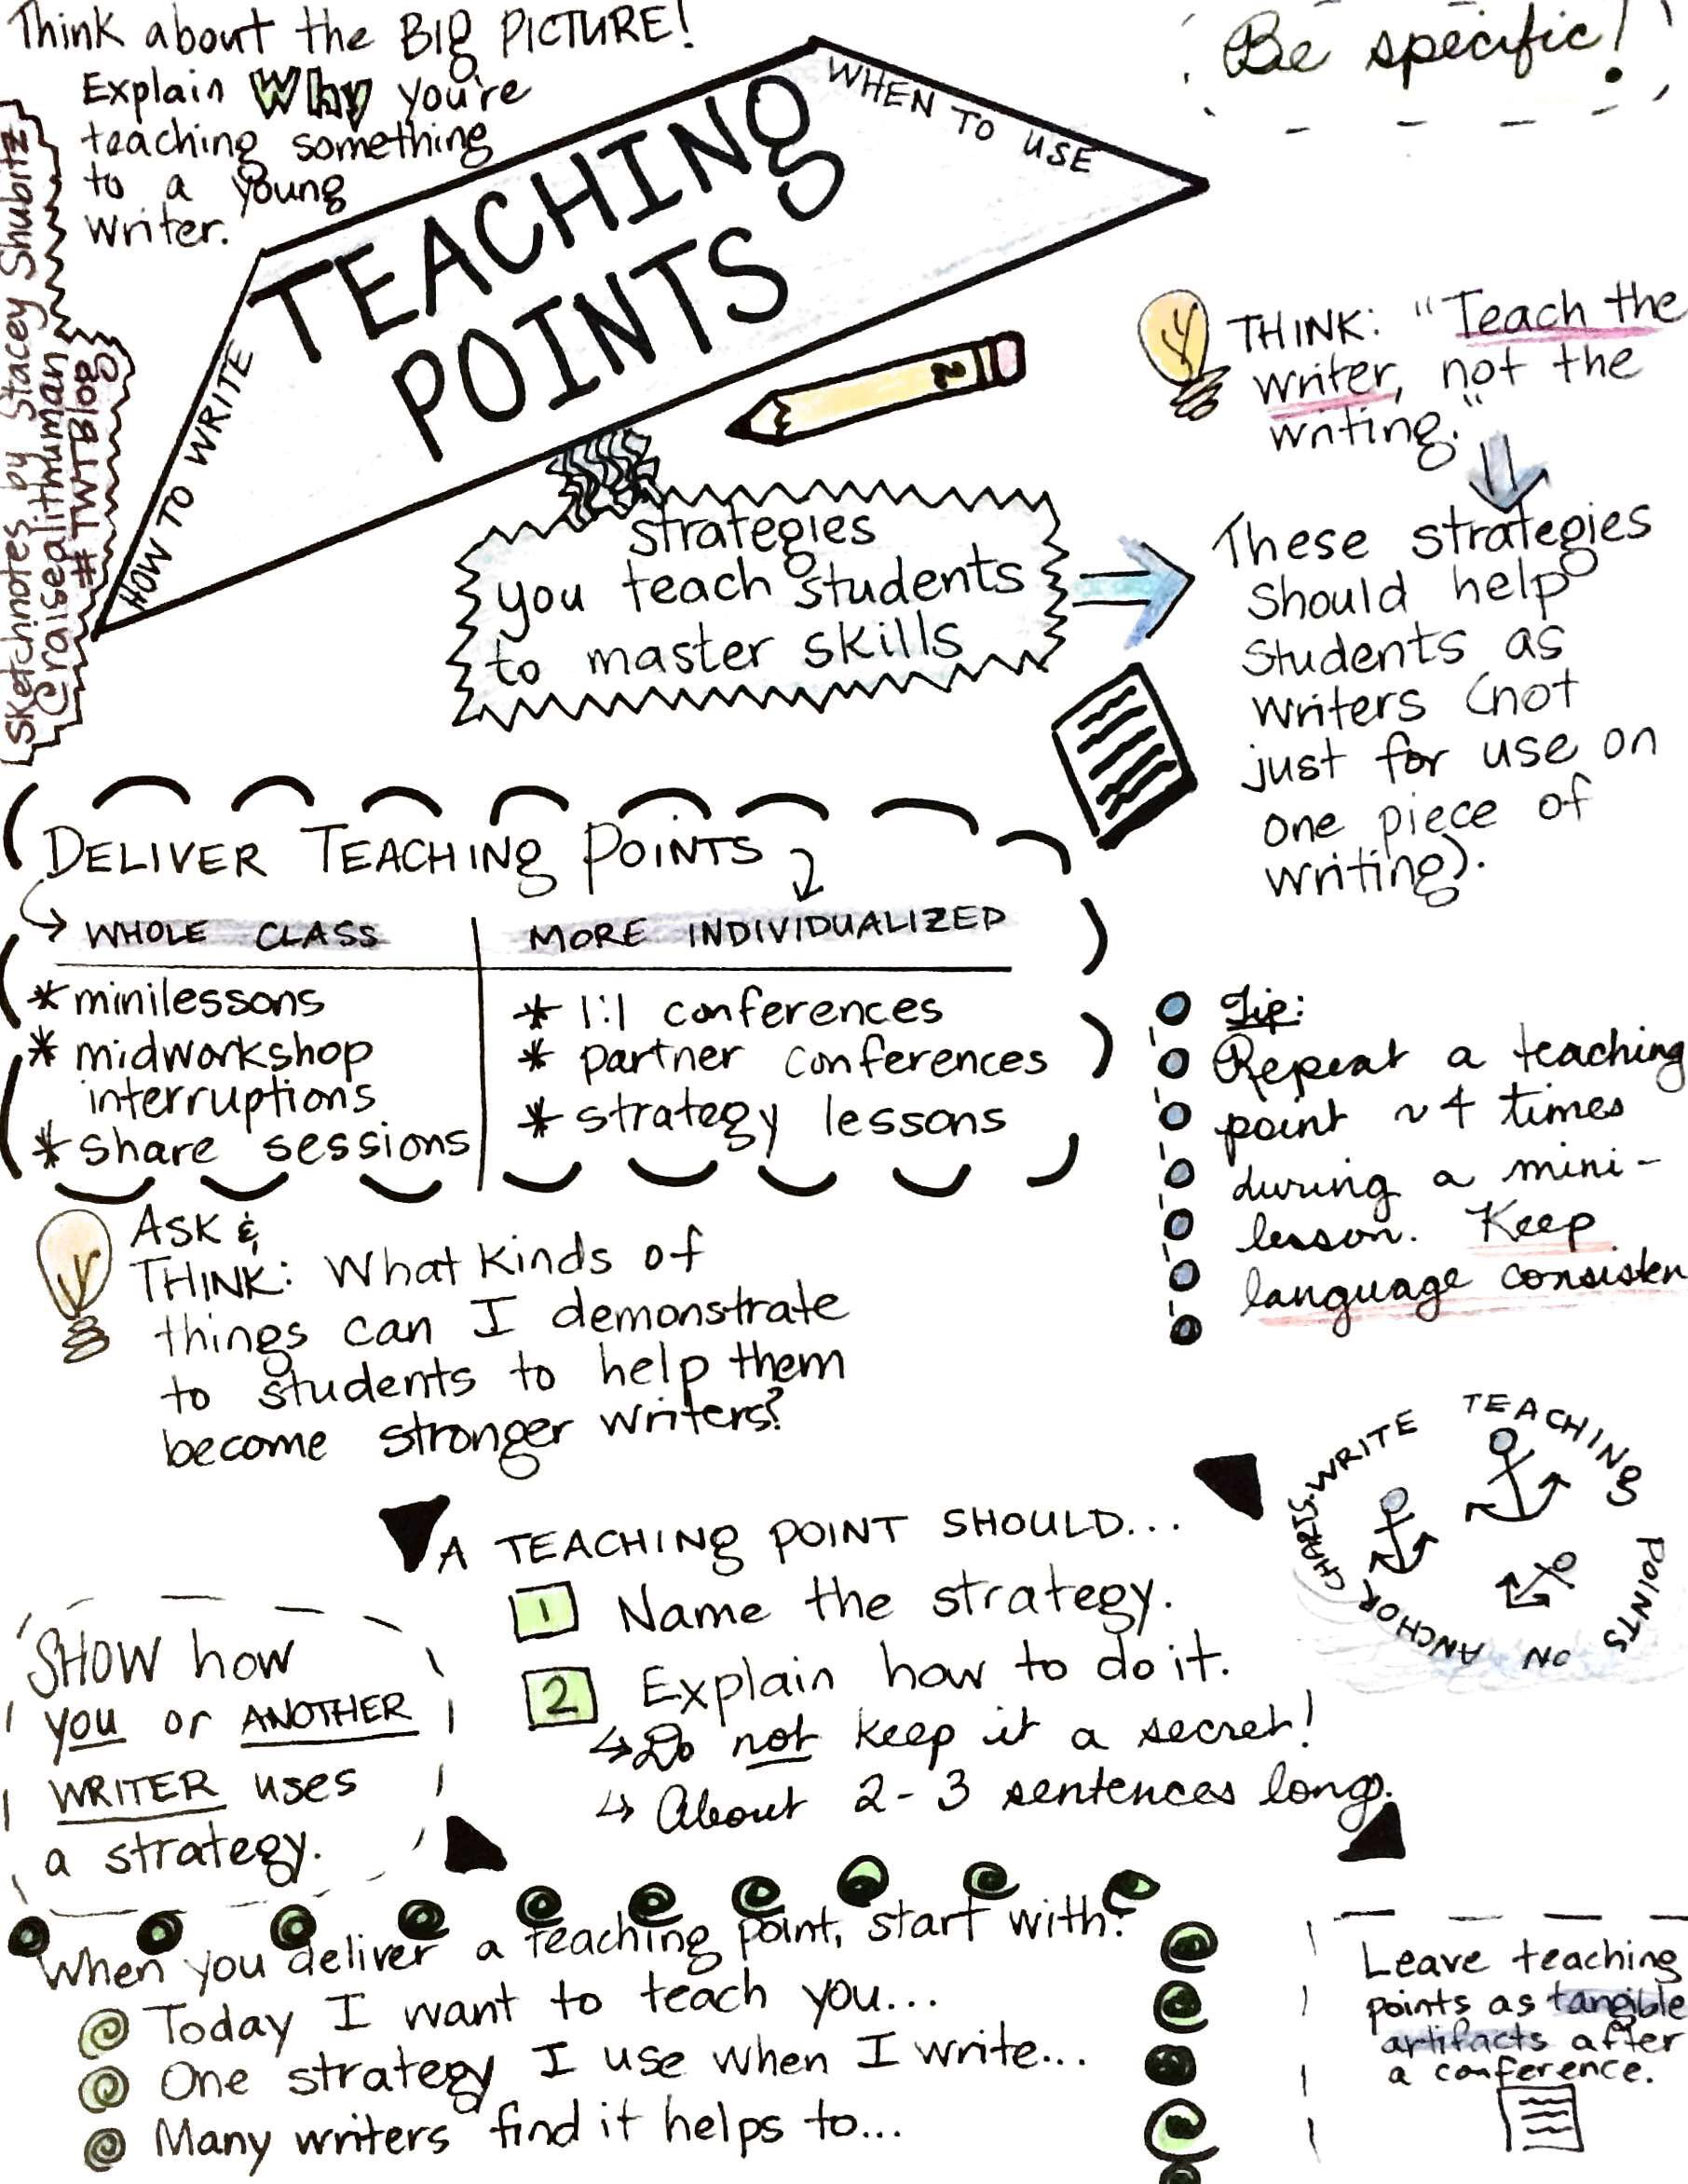 quick tips for writing teaching points two writing teachers click on the image to enlarge my sketchnotes